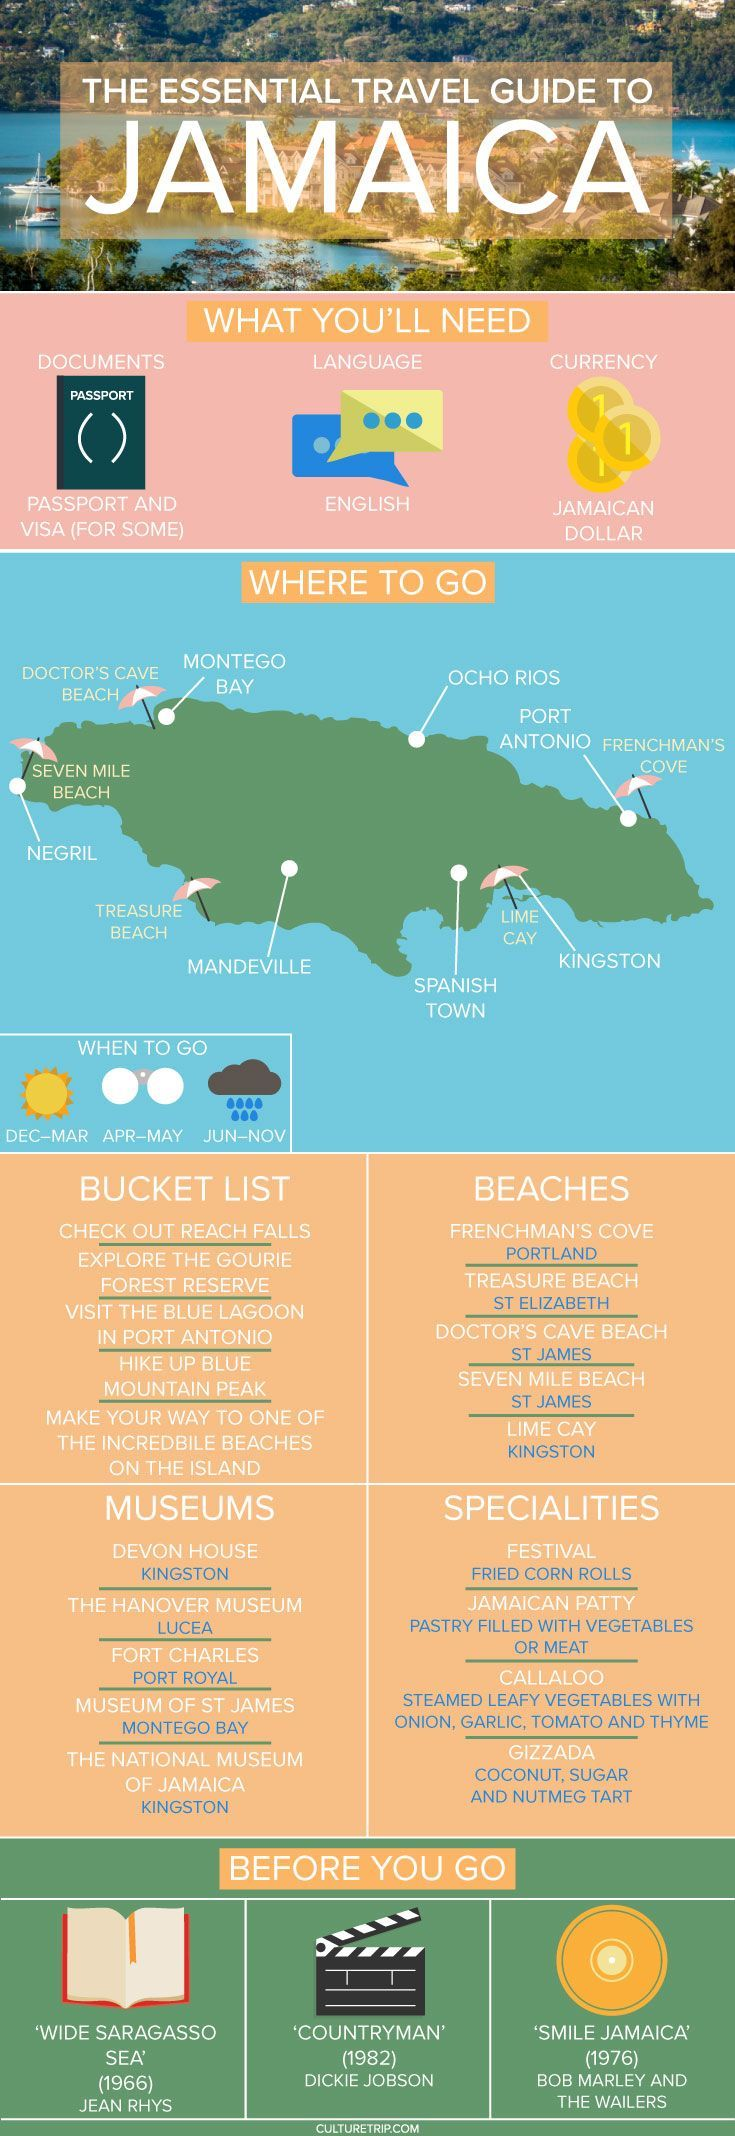 The Essential Travel Guide to Jamaica (Infographic)|Pinterest: theculturetrip #travelinfographic